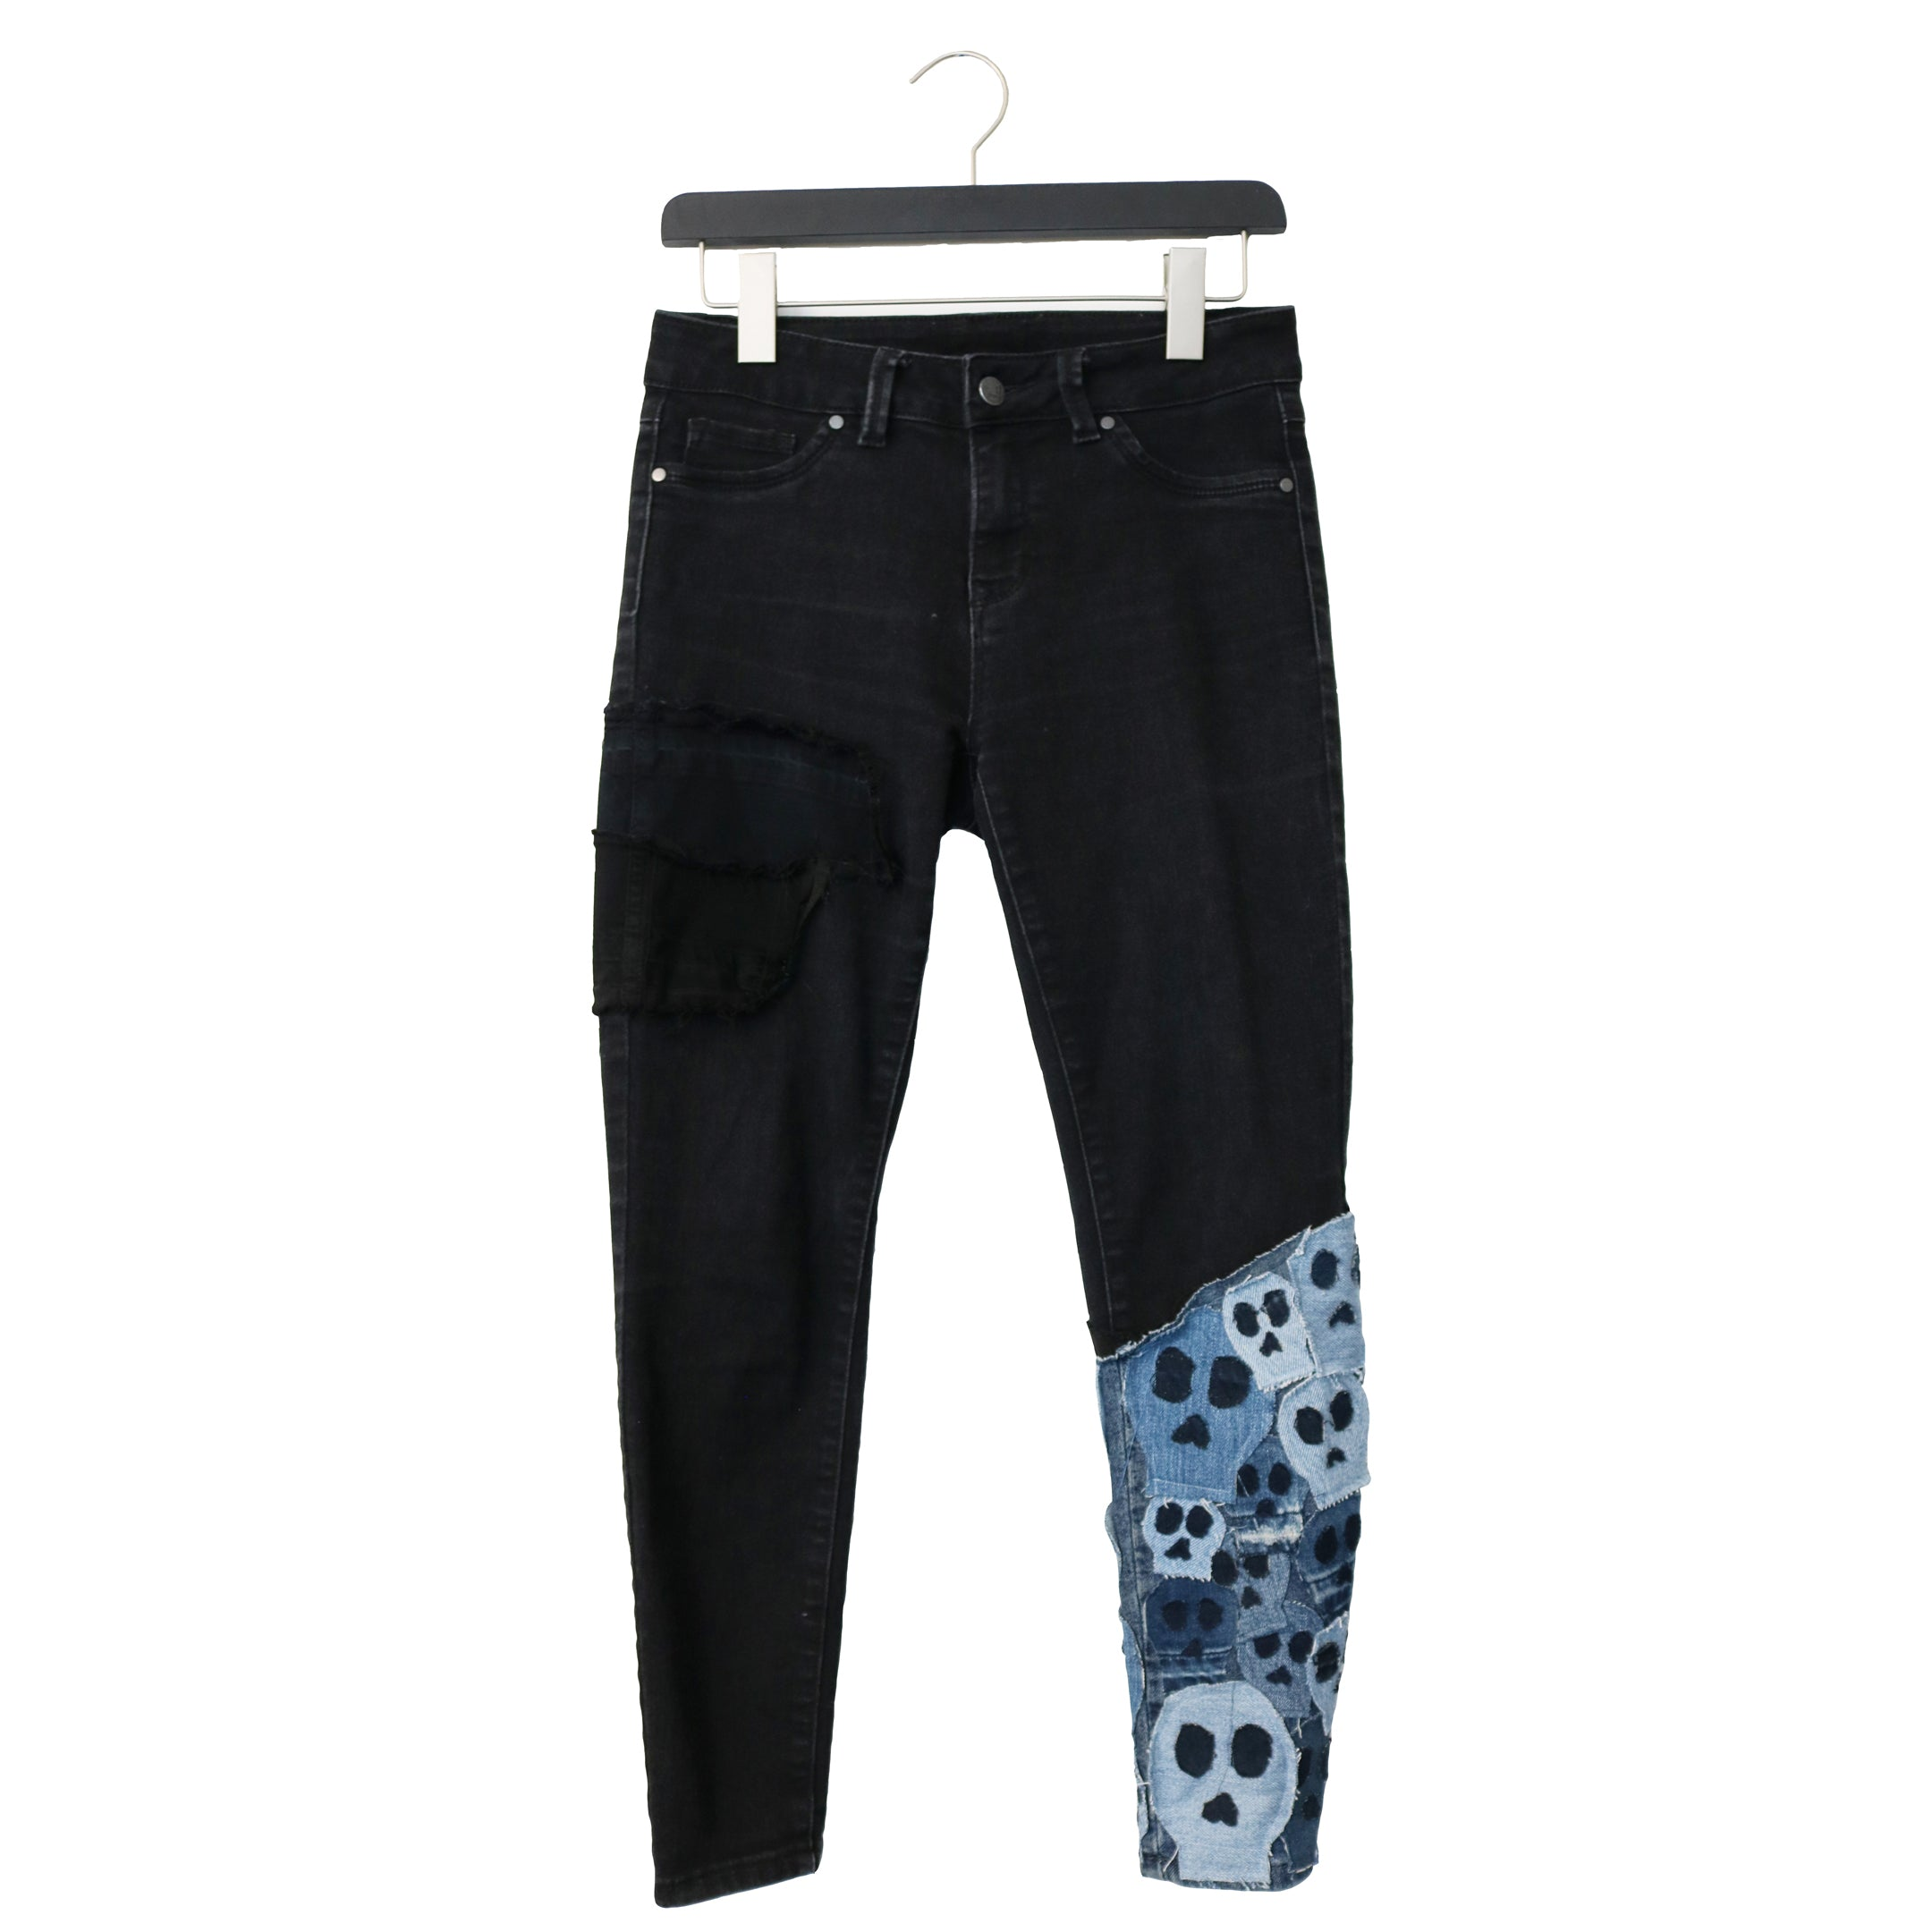 #REMIXbyStevieLeigh eco friendly skull patchwork jeans